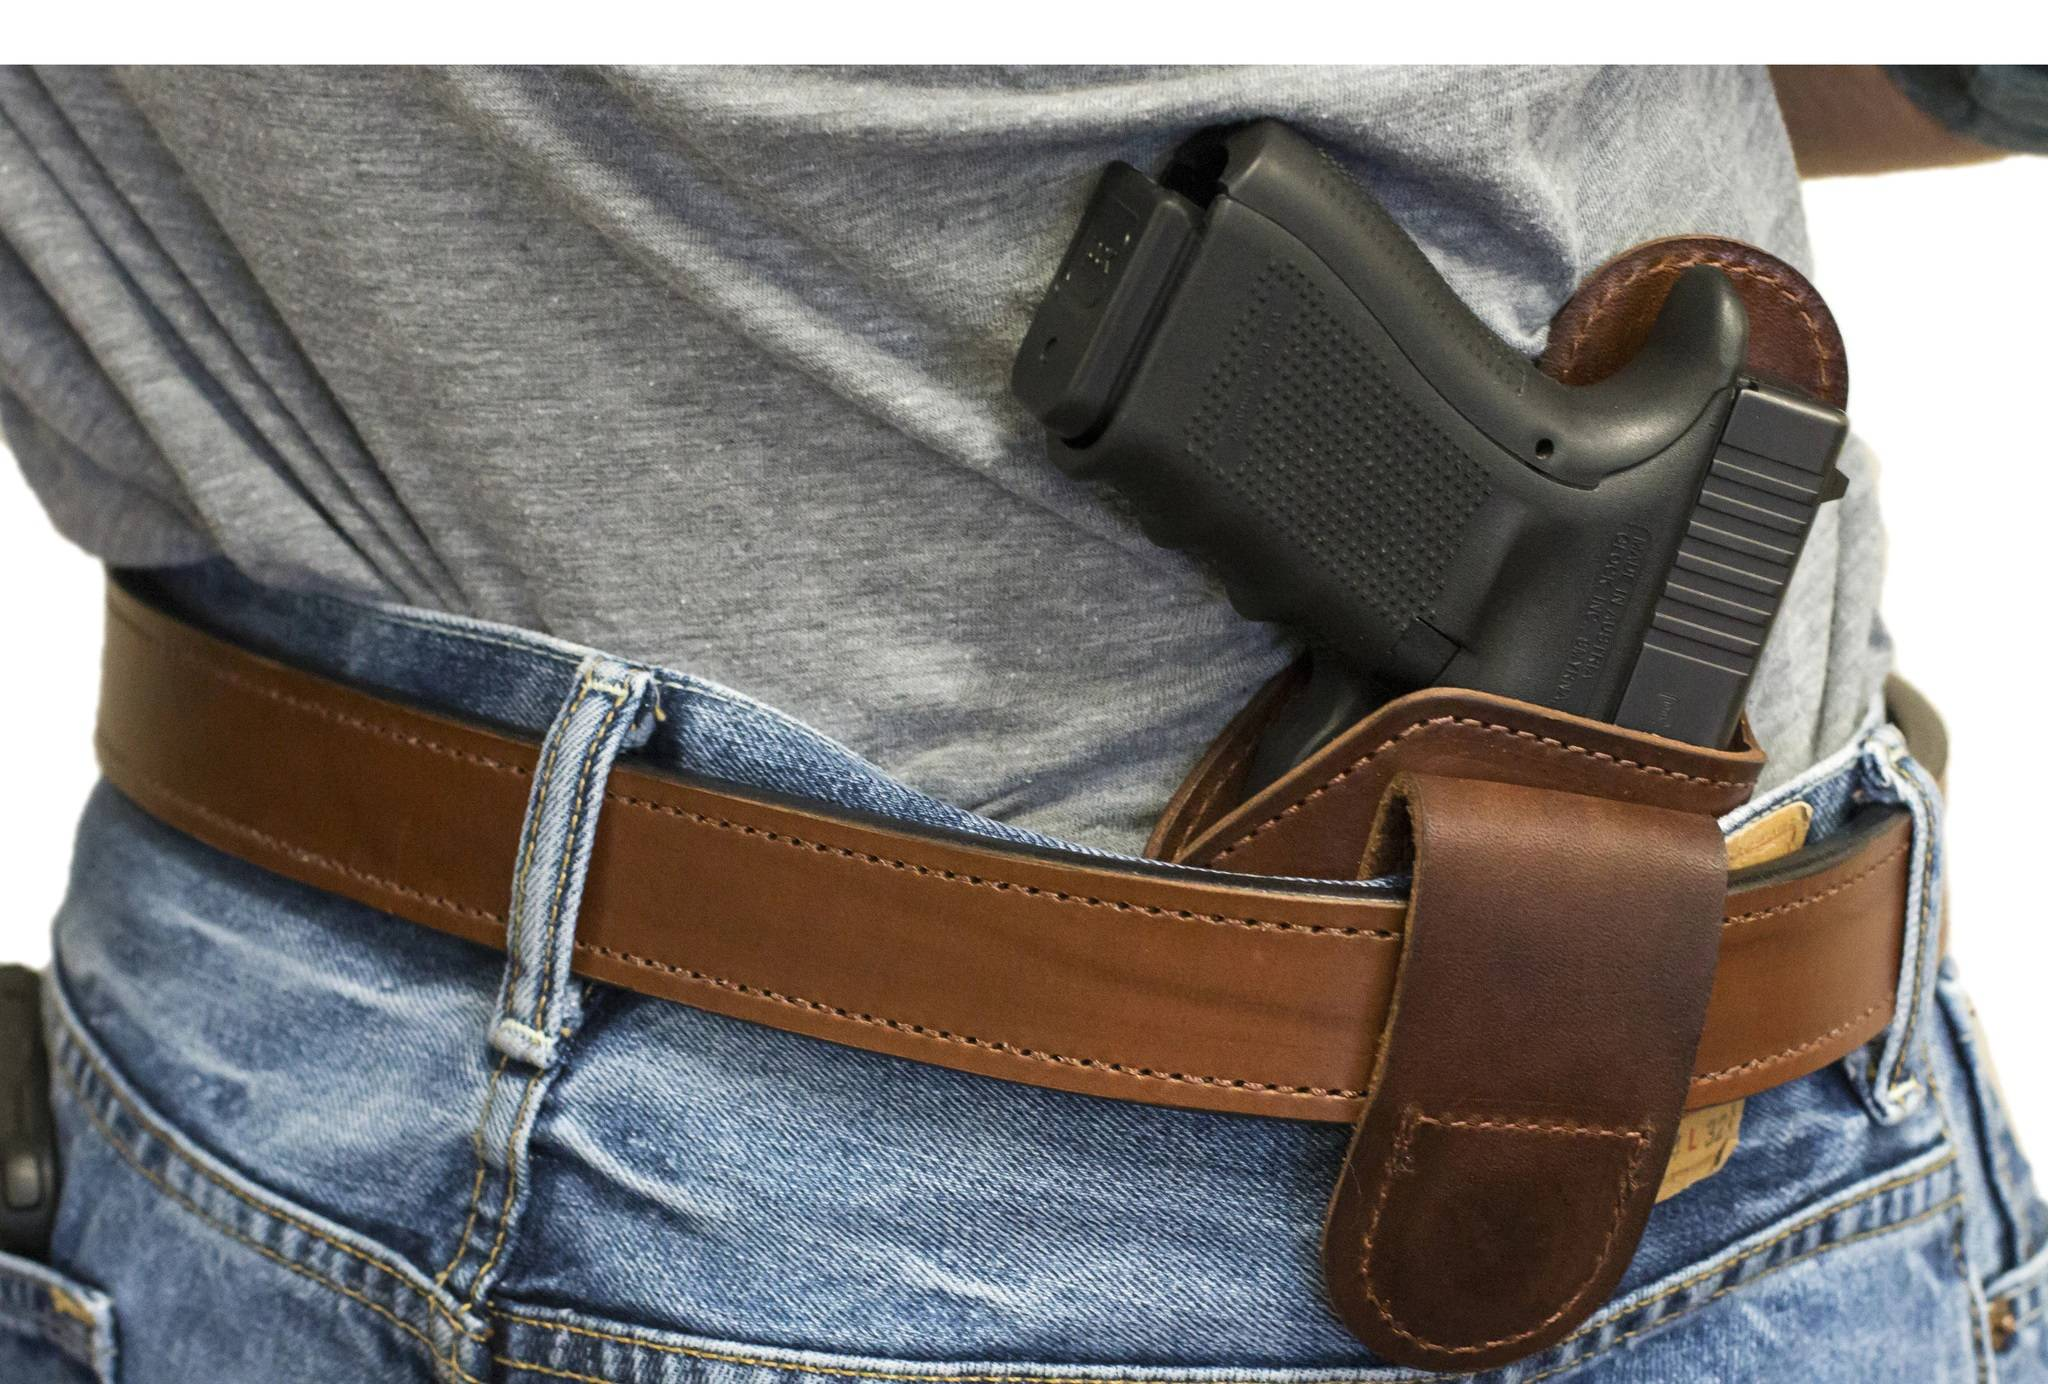 best 5 1911 concealed carry holsters review